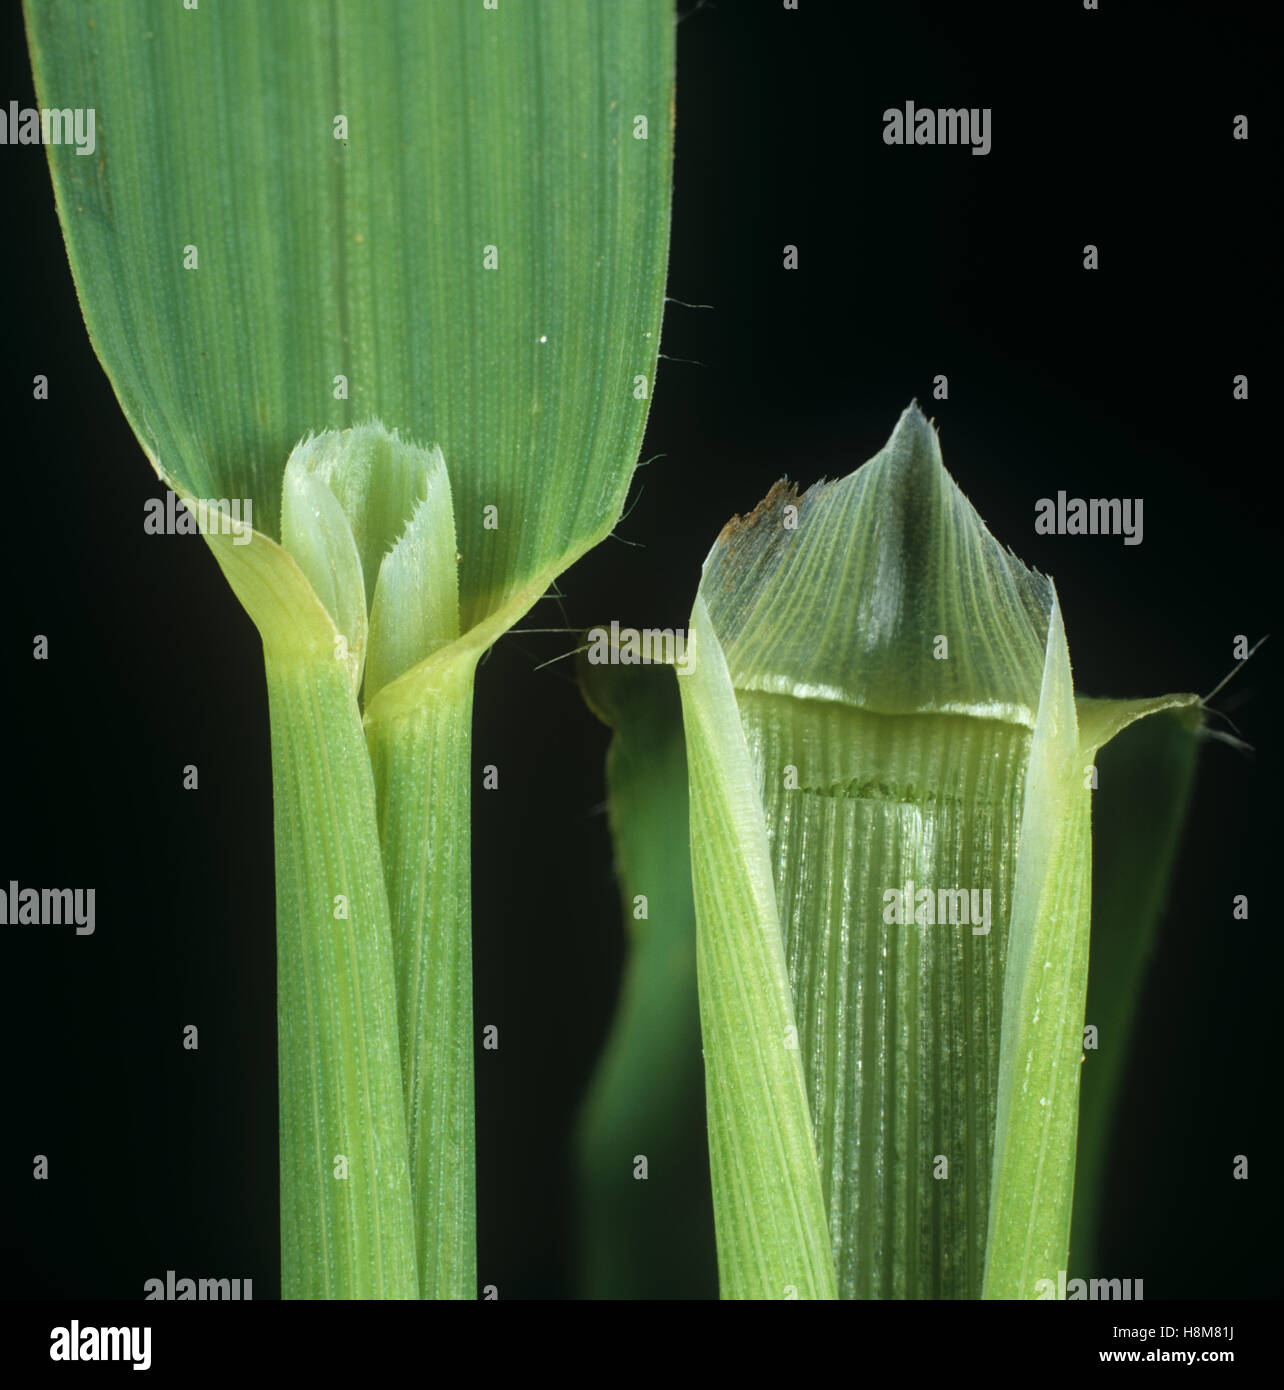 Wild oat, Avena fatua, leaf ligule of an agricultural grass weed - Stock Image